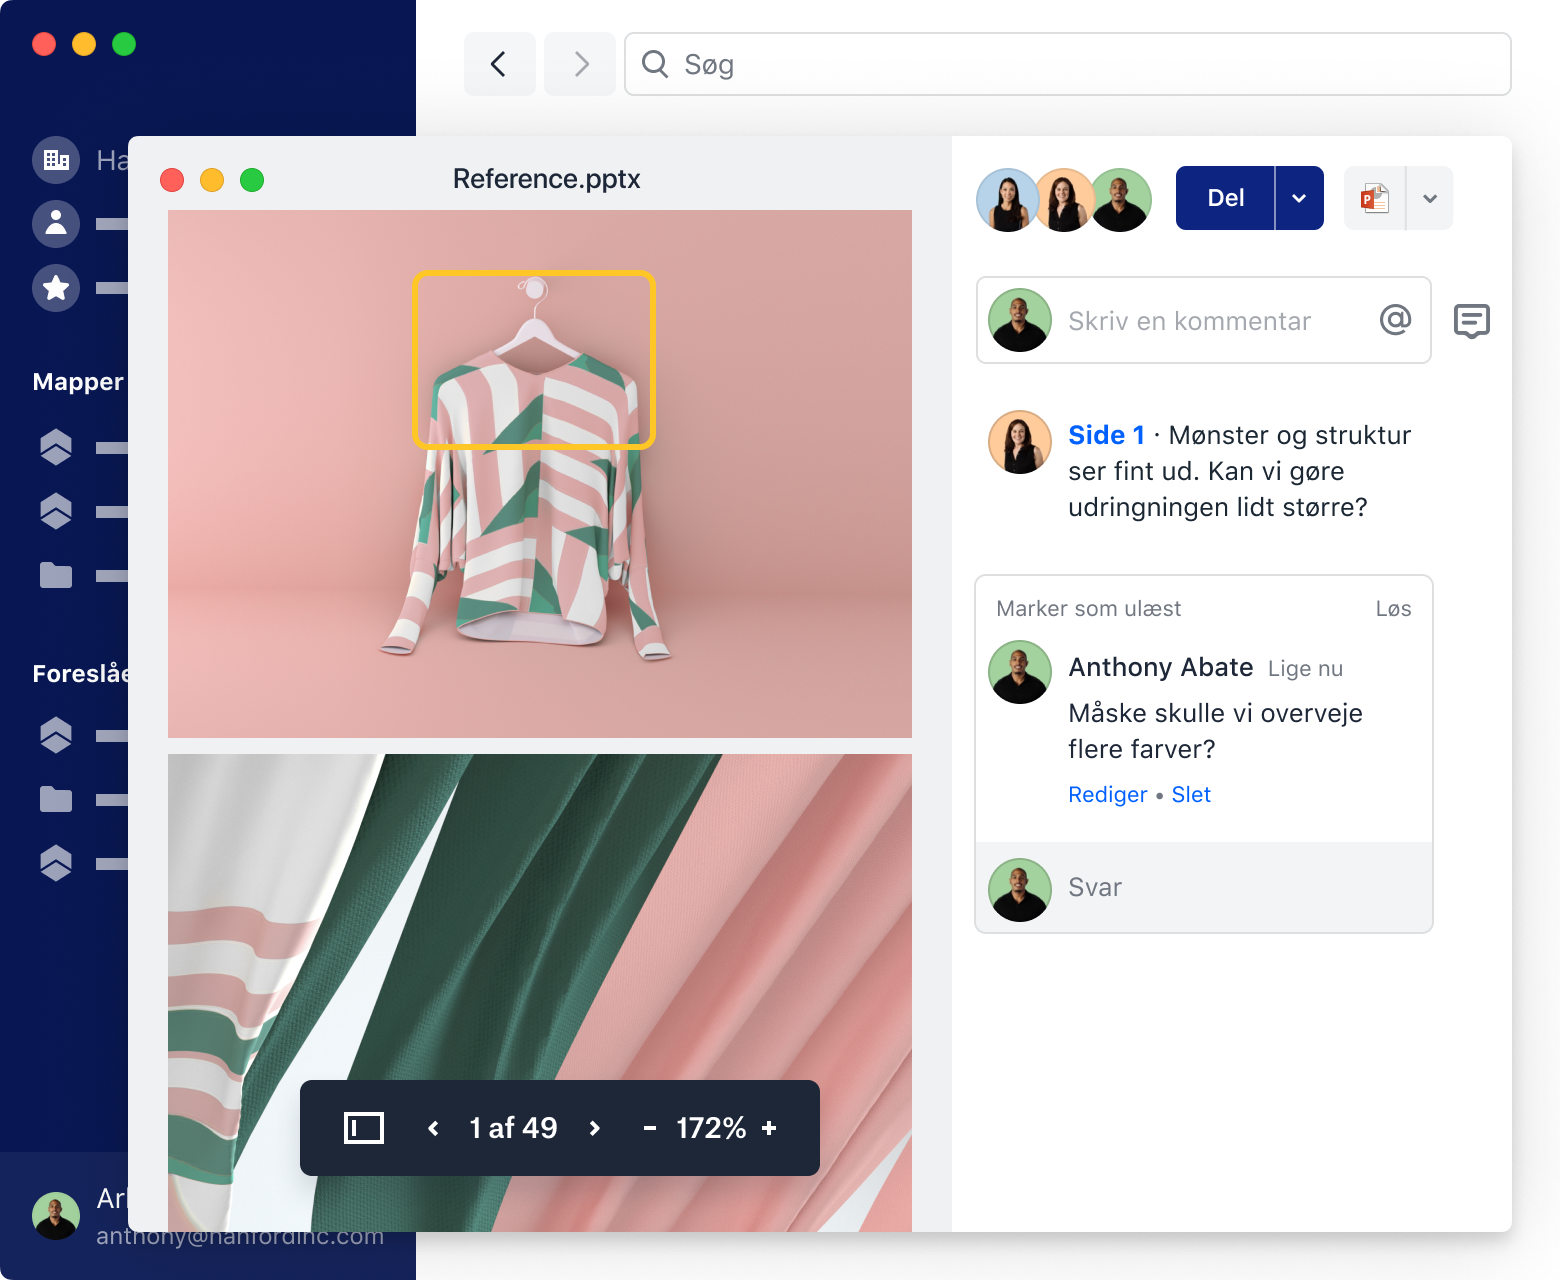 Examples of team members adding comments to images of clothing in Dropbox.